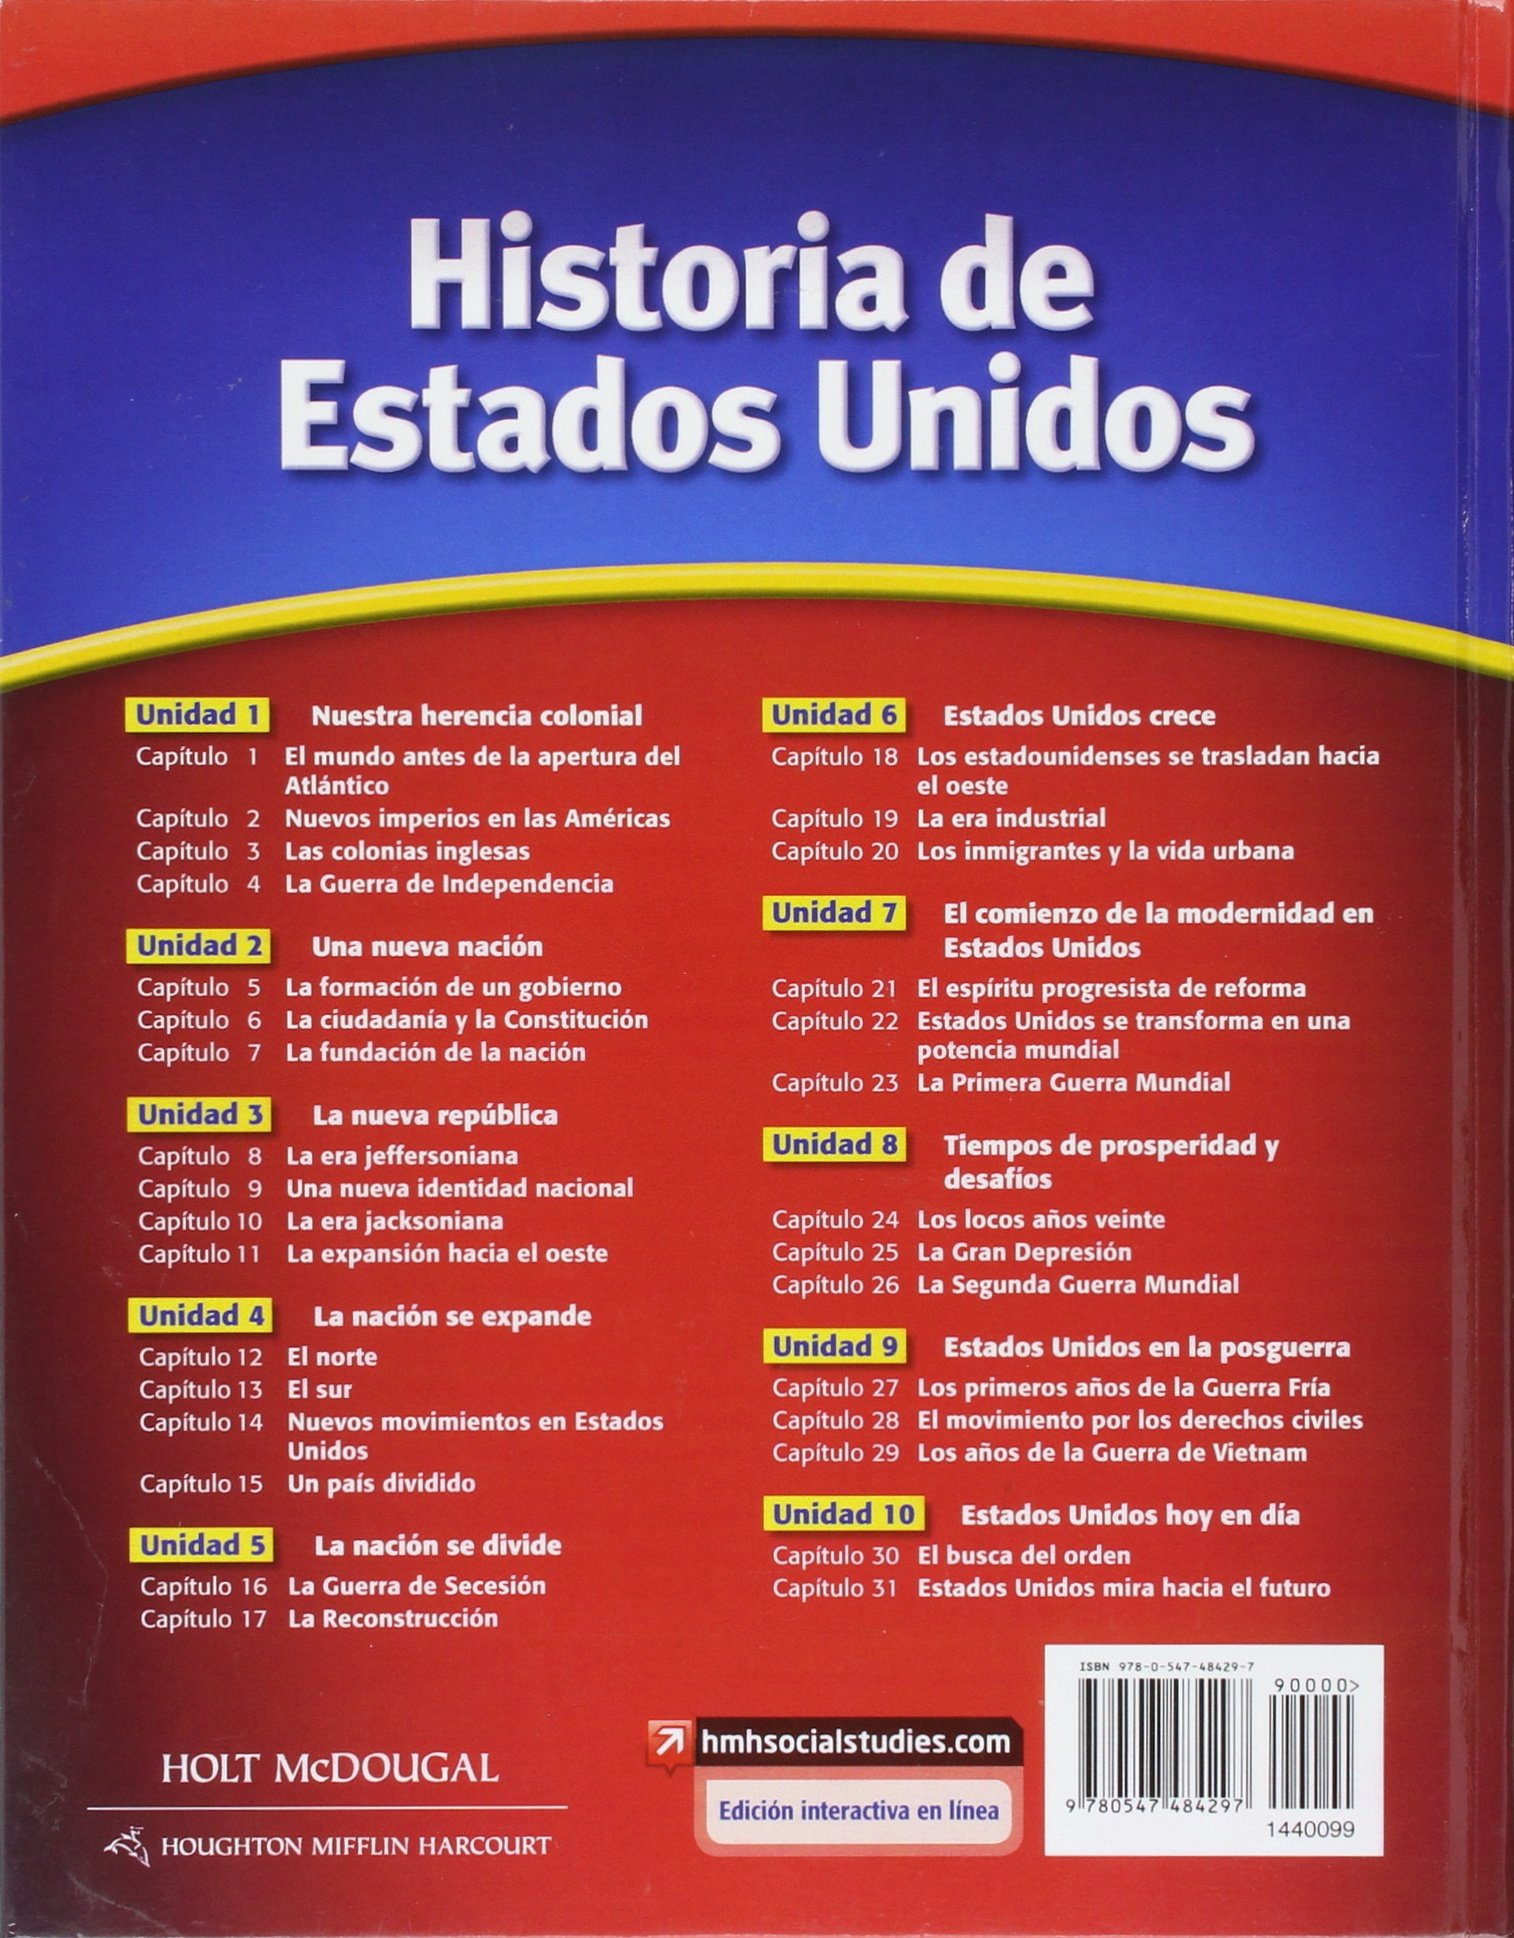 Amazon.com: United States History: Student Edition, Spanish 2012 (9780547484297): HOLT MCDOUGAL: Books